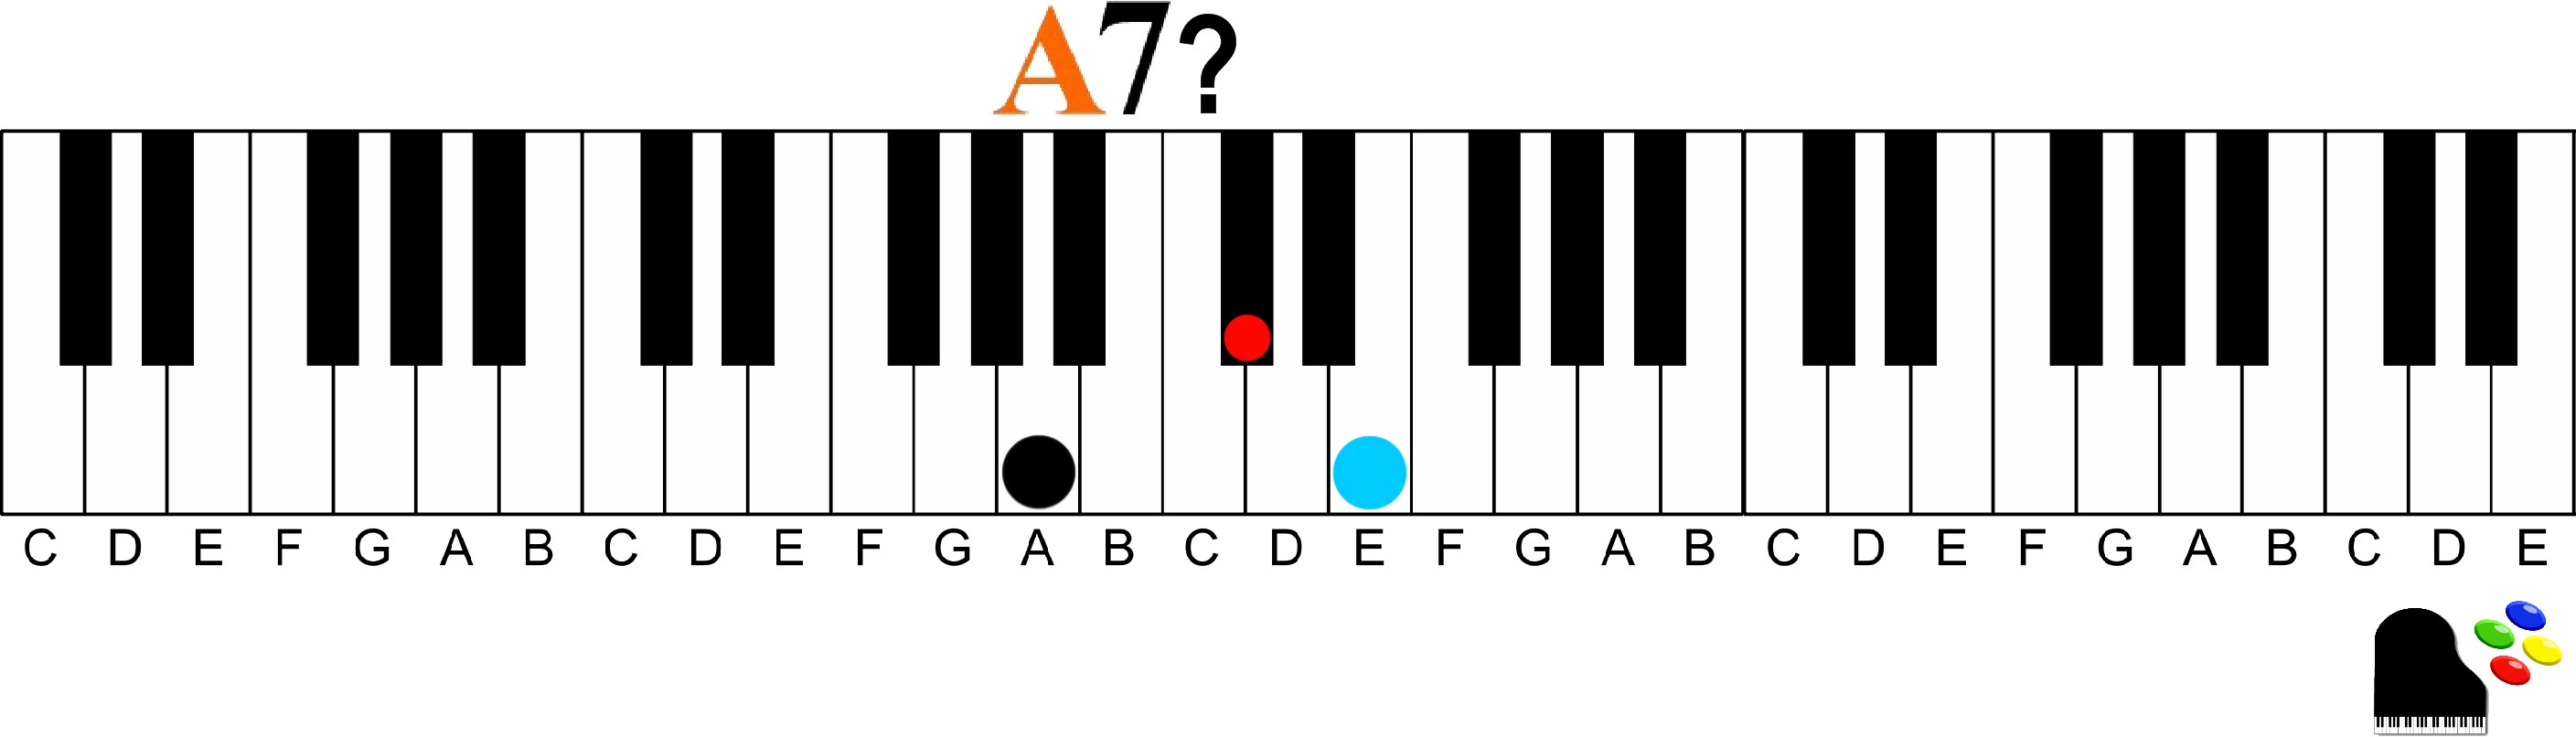 A 7 chord question 9th chords on the piano | How to Understand and Play Them